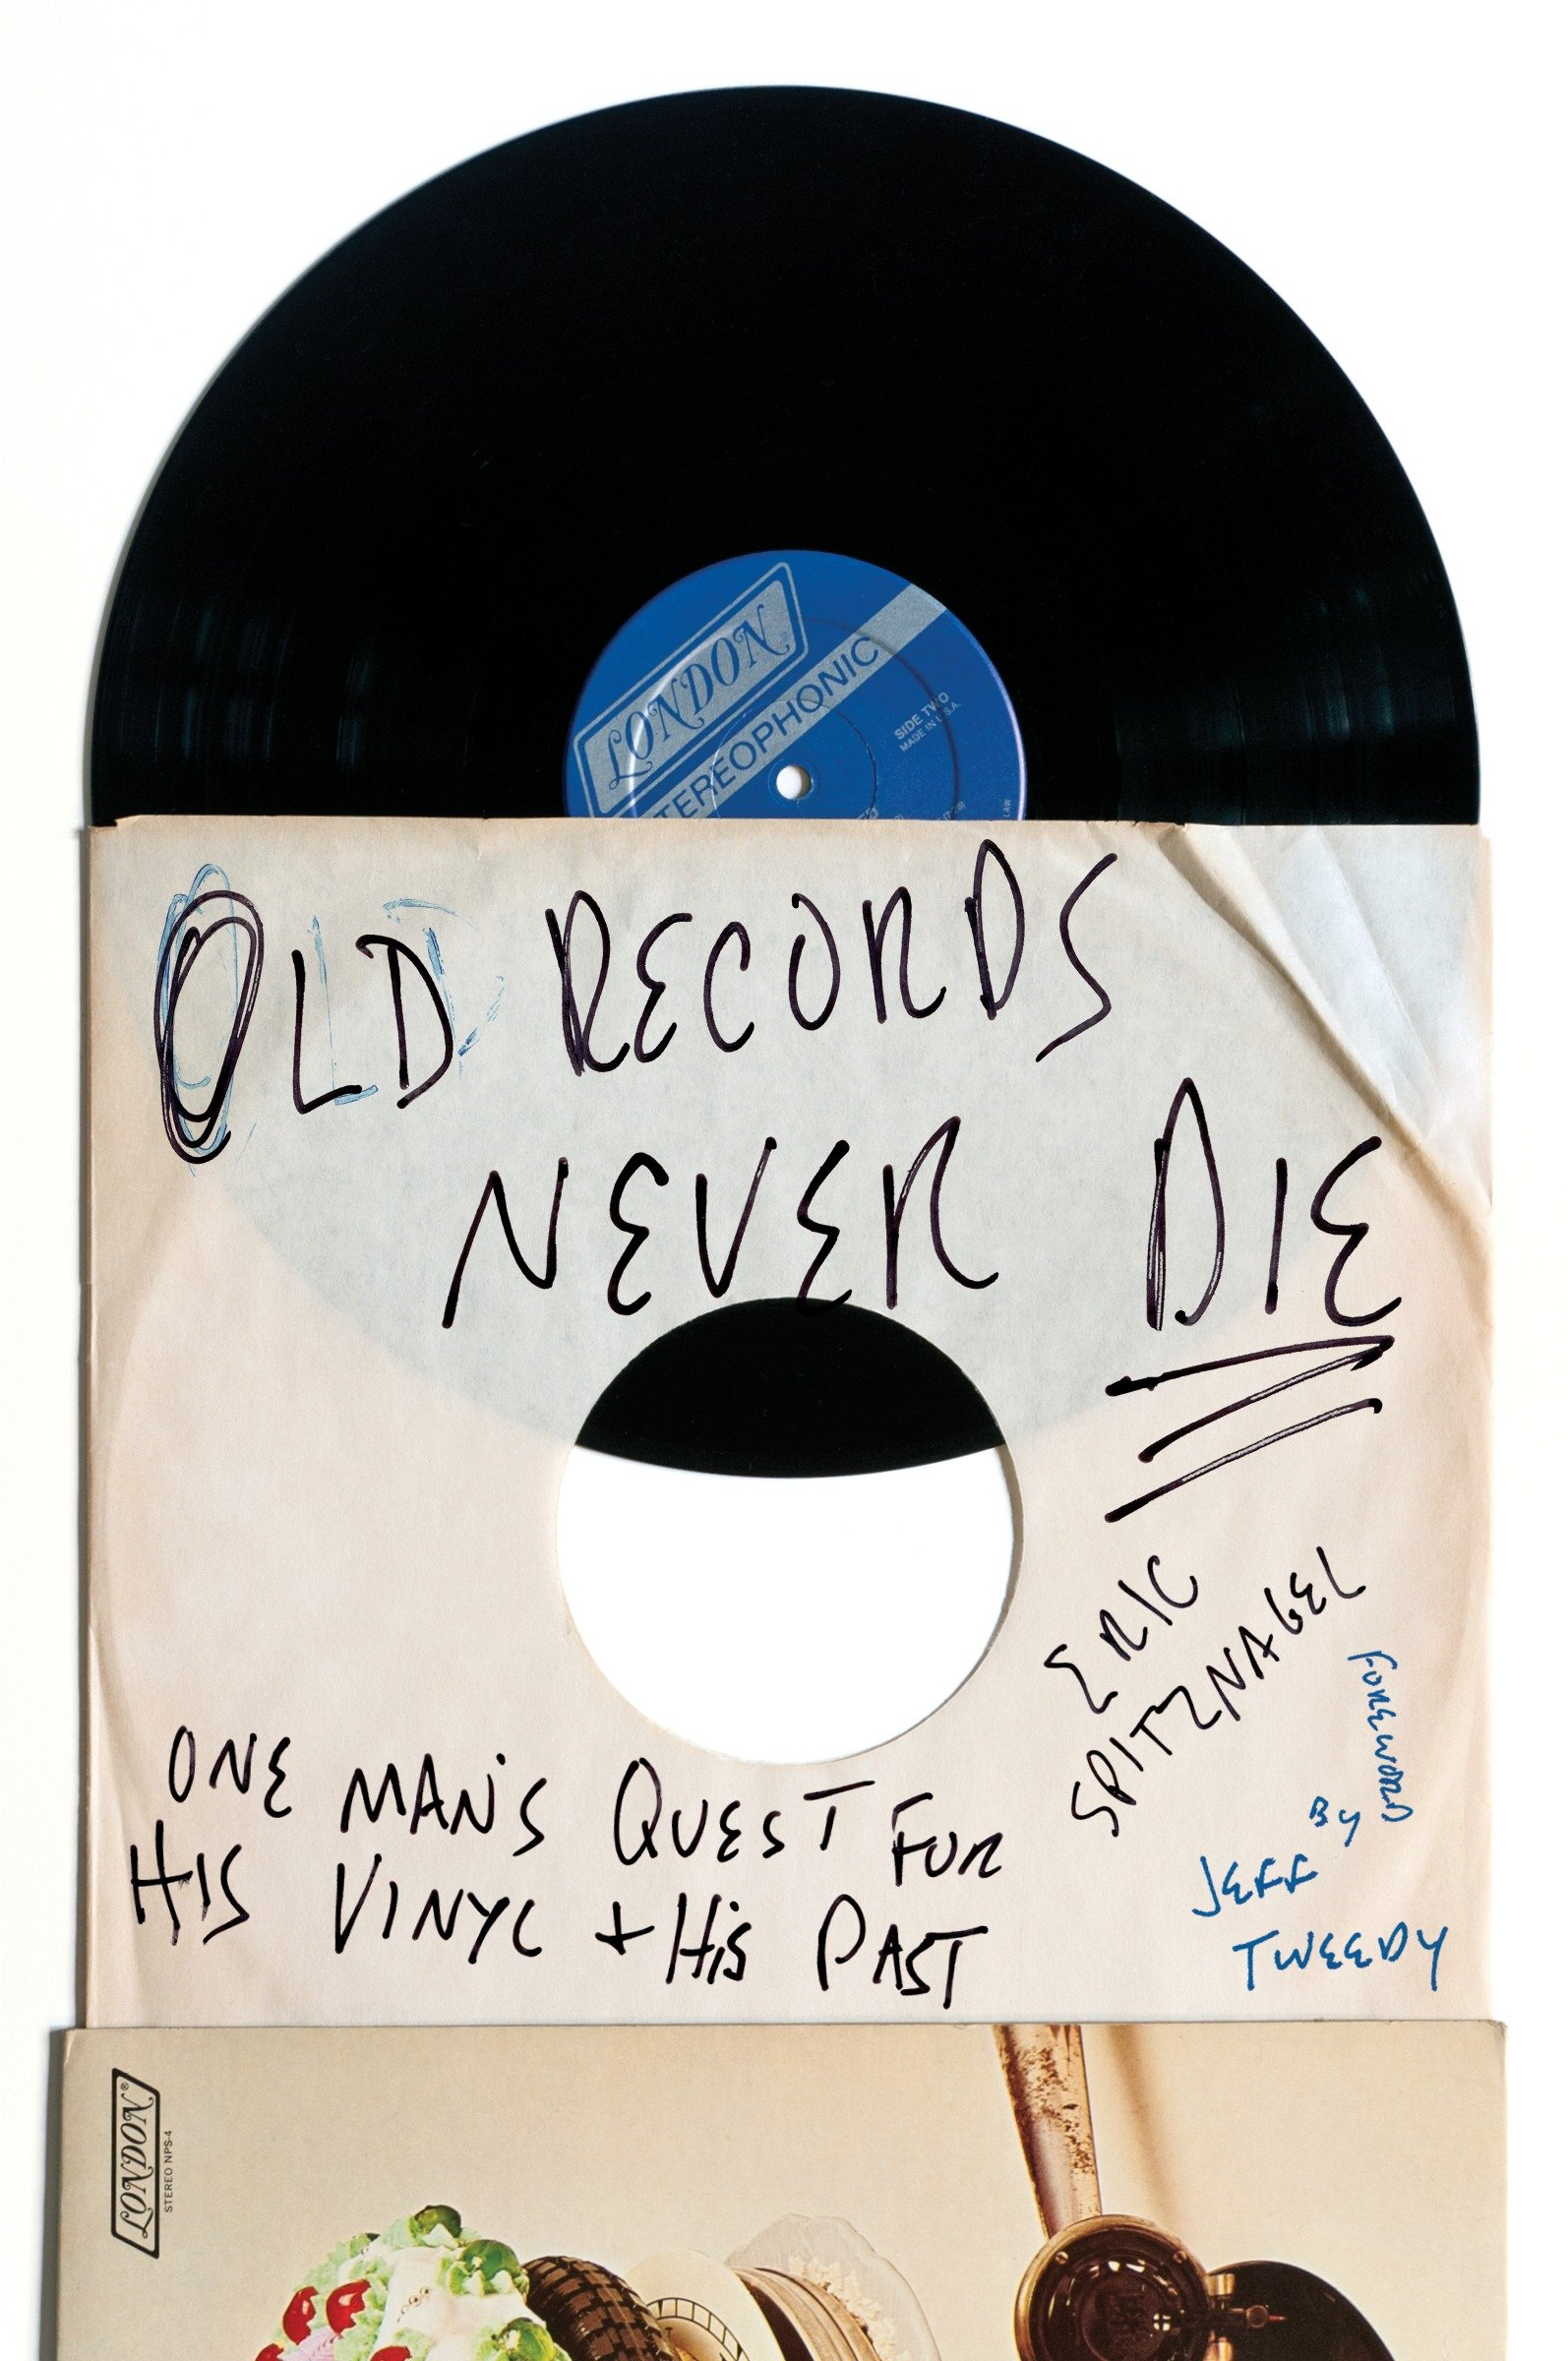 Old records never die one man's quest for his vinyl and his past cover image